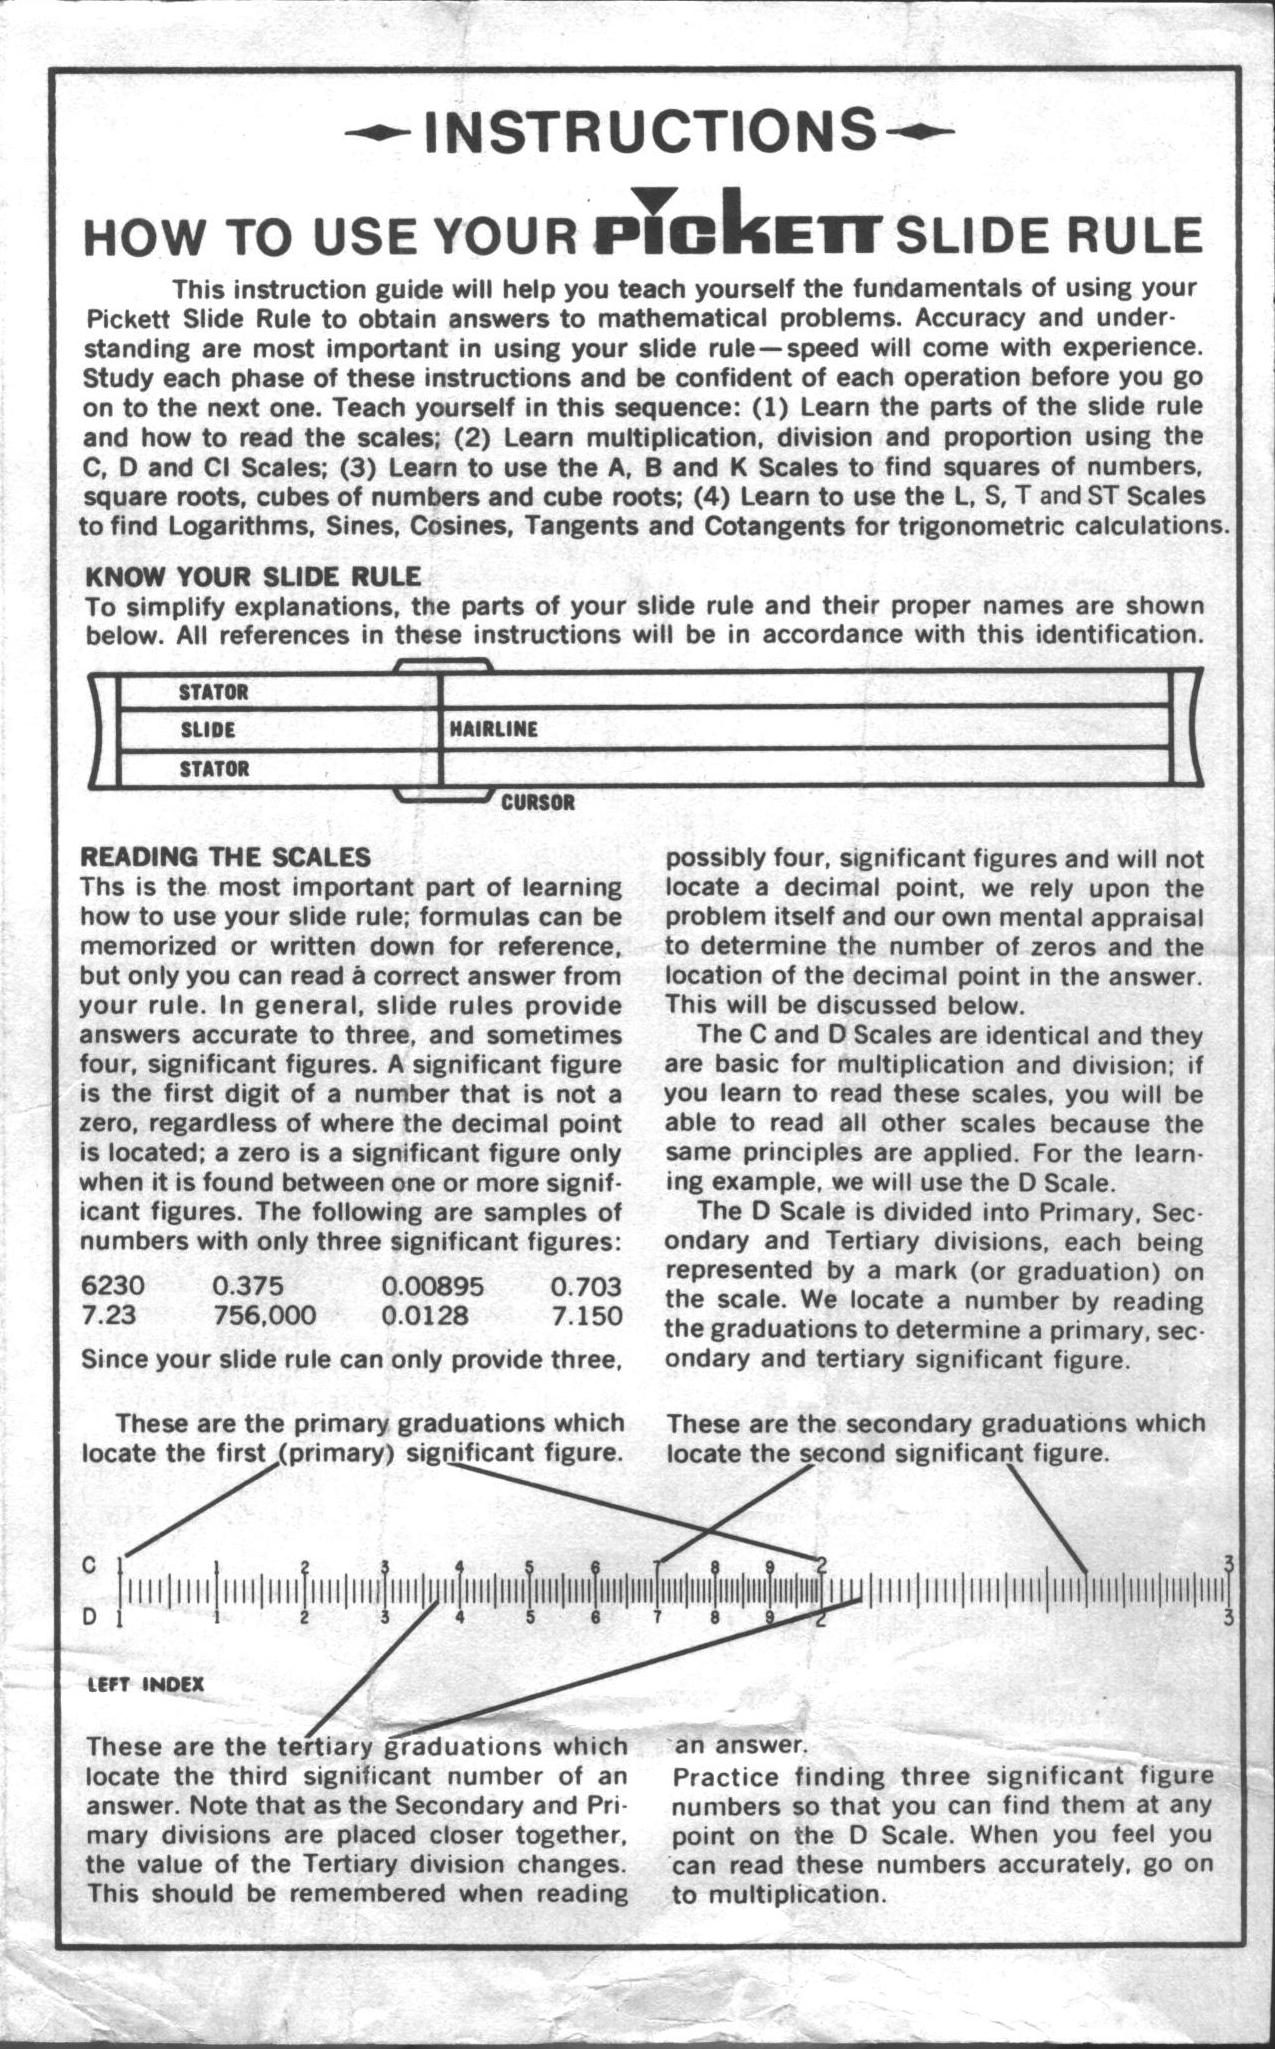 Isrmm308pickett160instbillwehrendcollectiong isrm m308 how to use your pickett slide rule comes with model 160 plastic pickett pickett inc irvine ca 92705 usa falaconquin